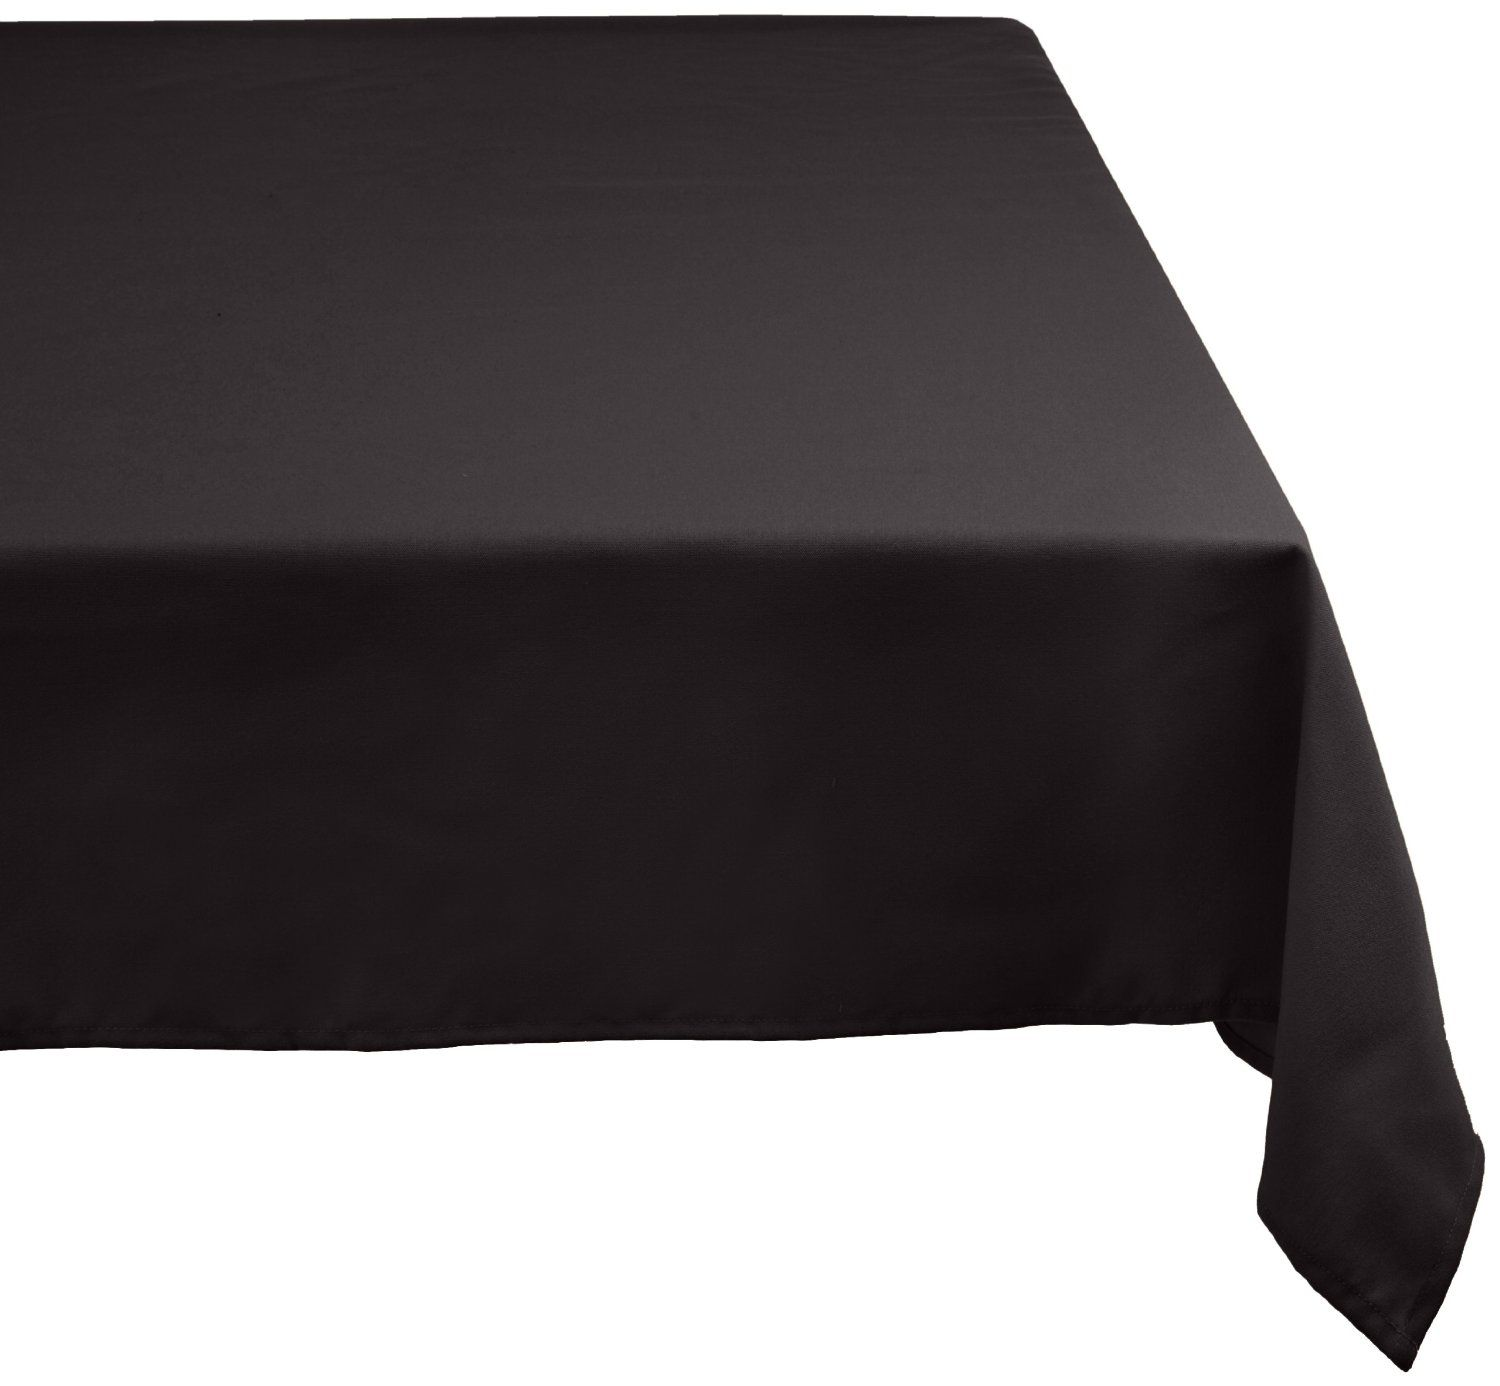 Attractive Amazon.com   DII 100% Polyester, Machine Washable Tablecloth Black 52x70,  60x104